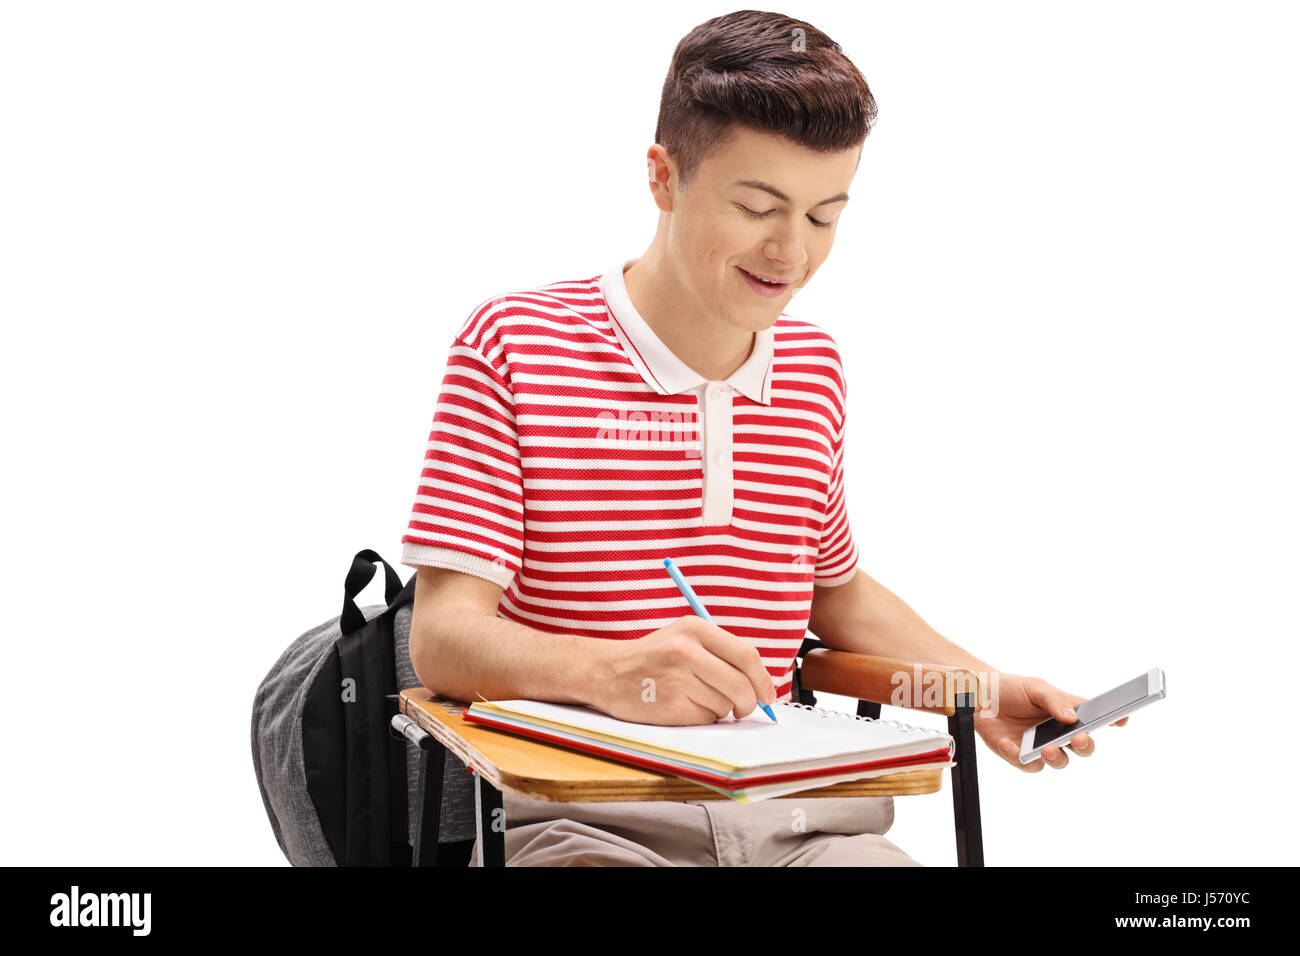 Teen student cheating on a test with a phone isolated on white background - Stock Image